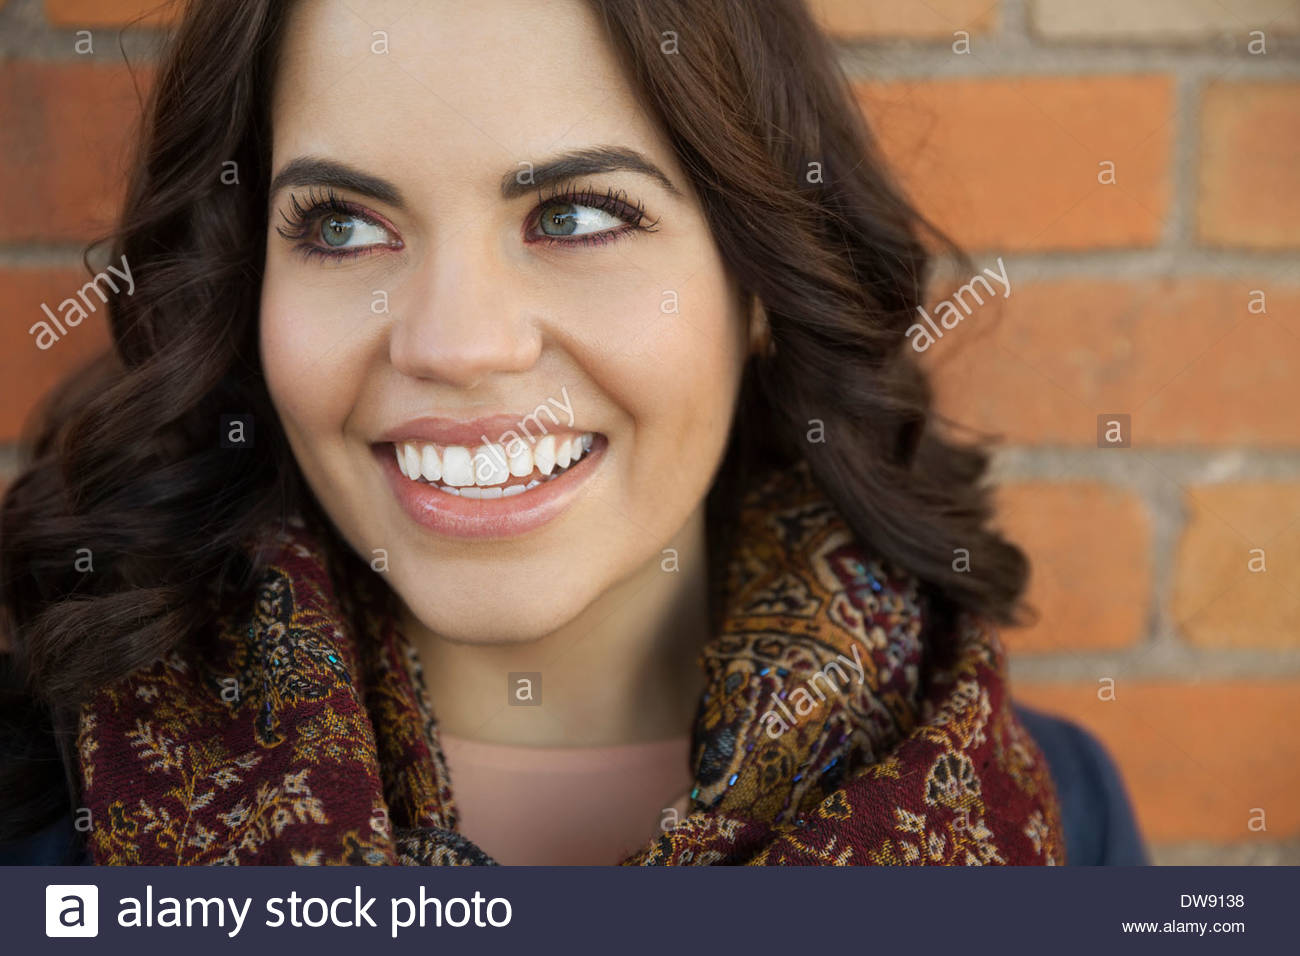 Beautiful woman smiling against brick wall Photo Stock